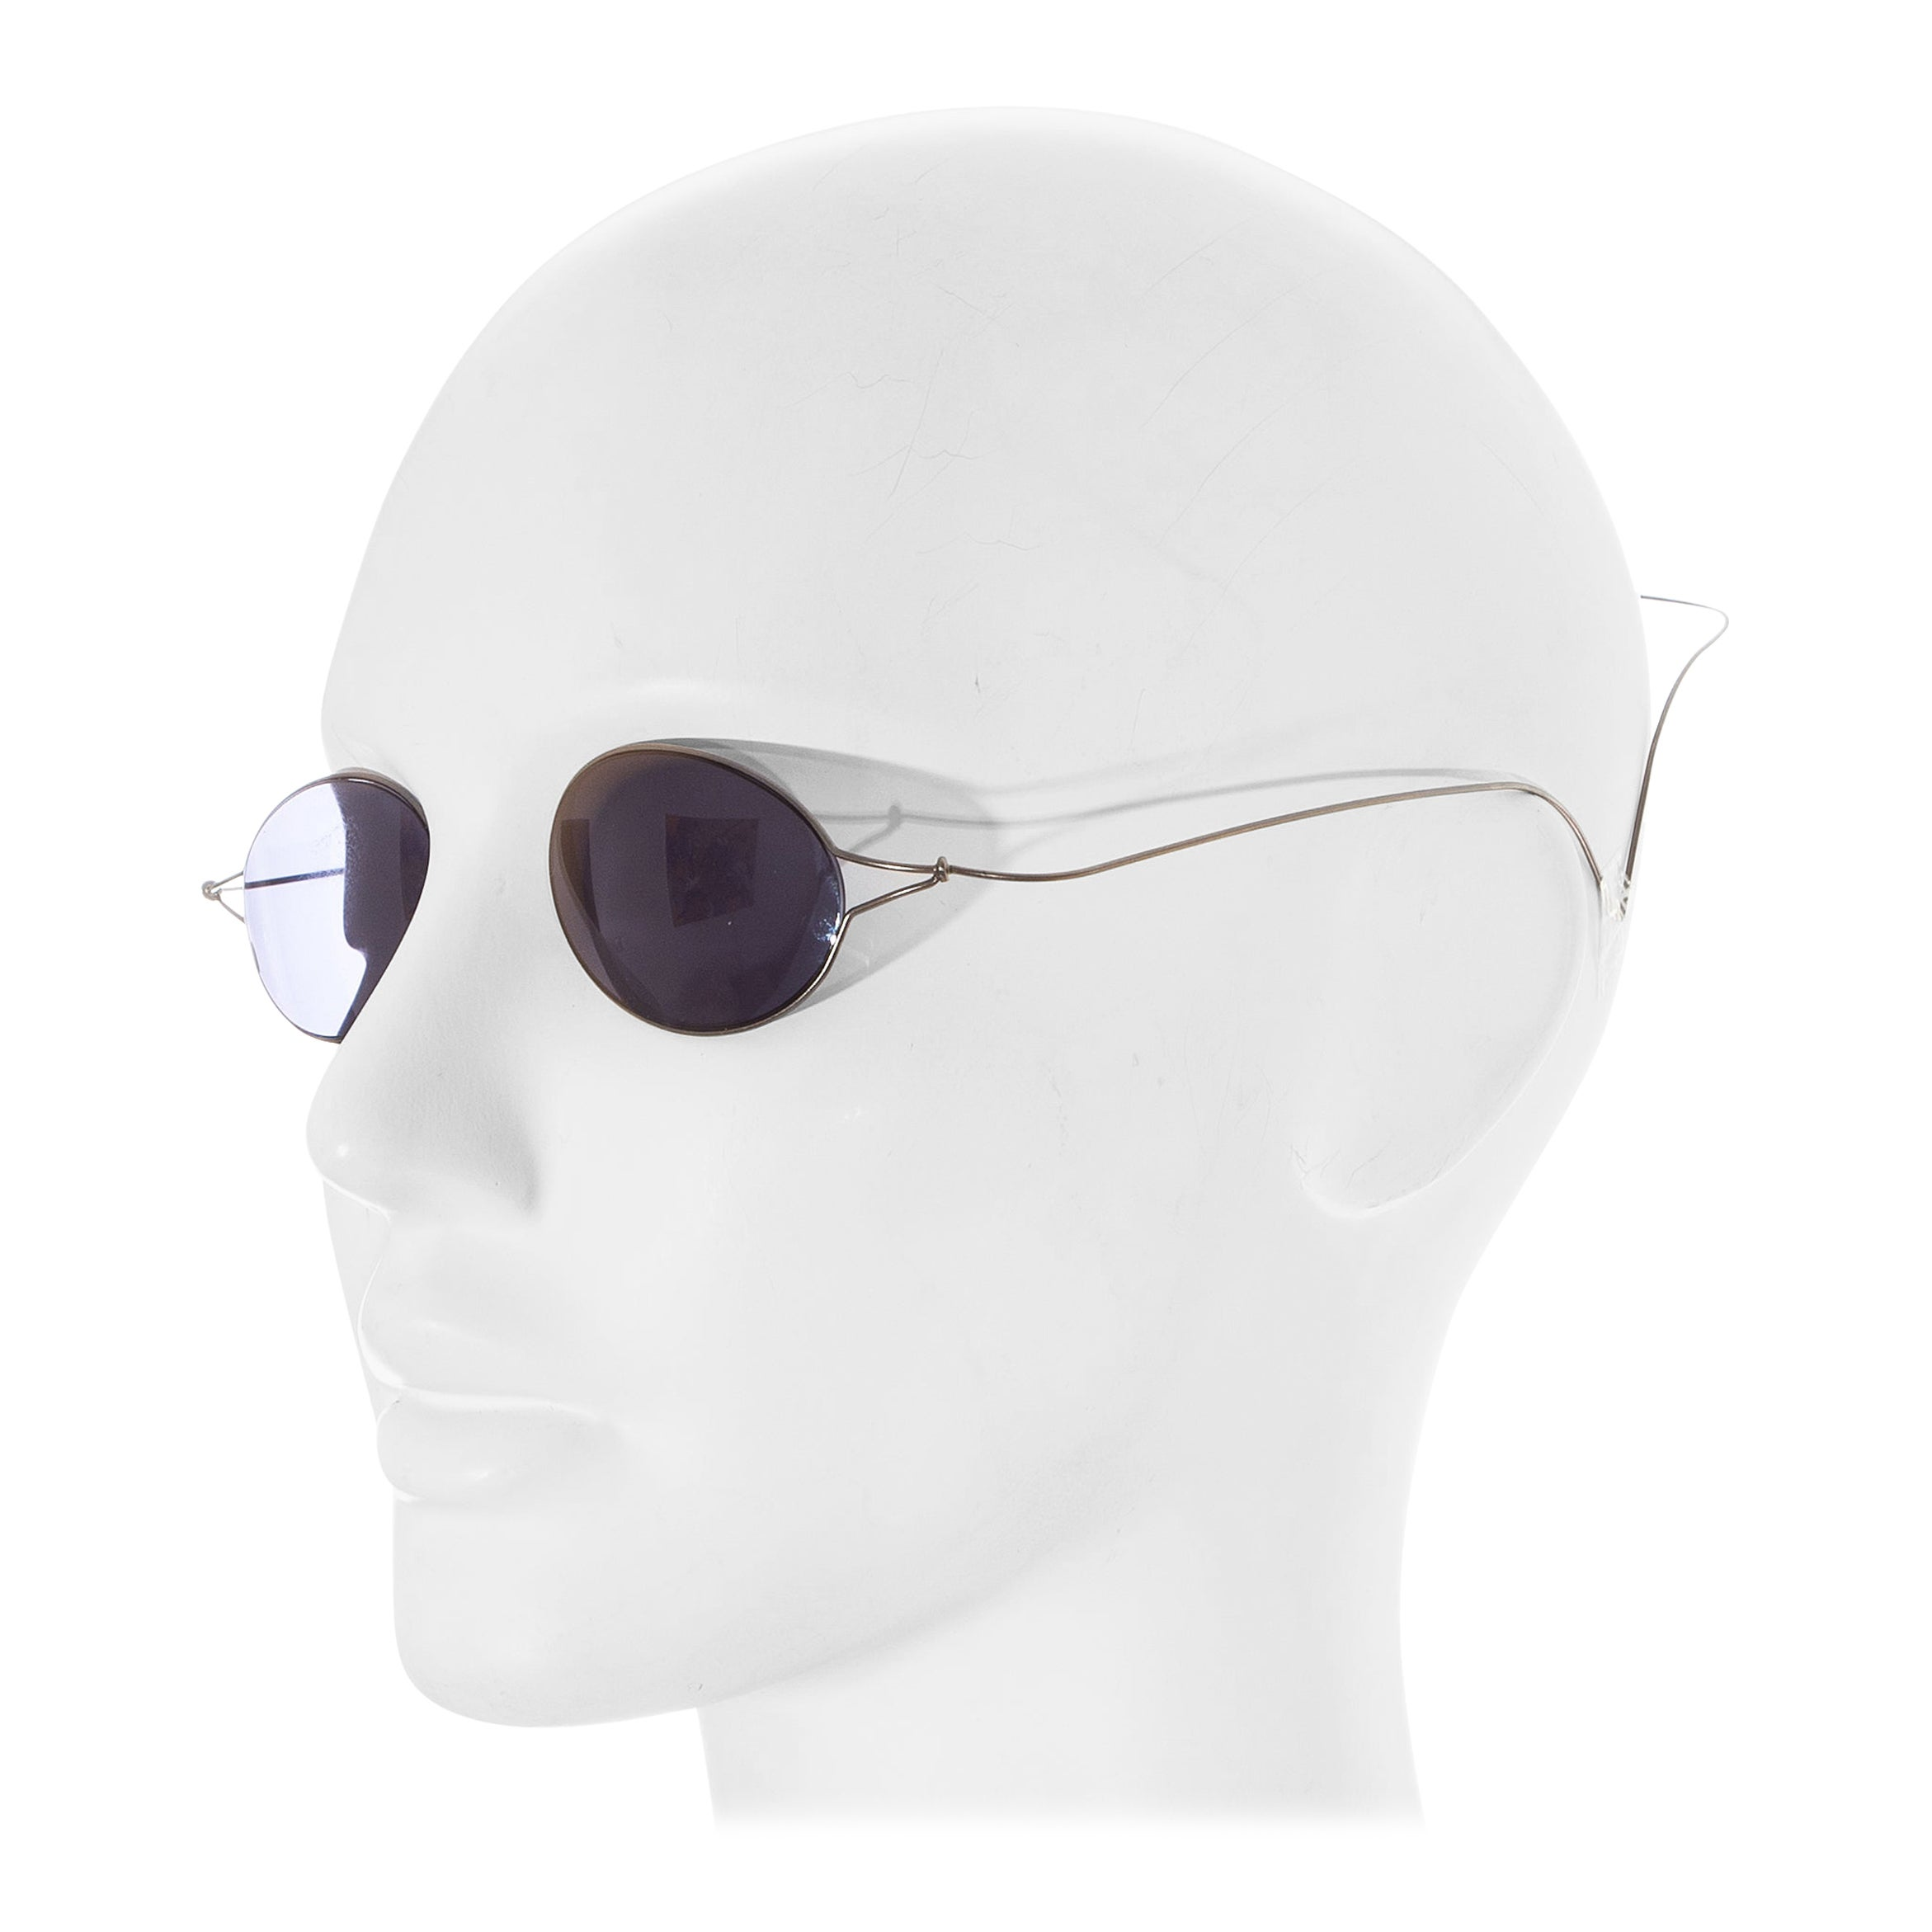 Chanel by Karl Lagerfeld 'Double Monocle' sunglasses for sunbathing, ss 1999